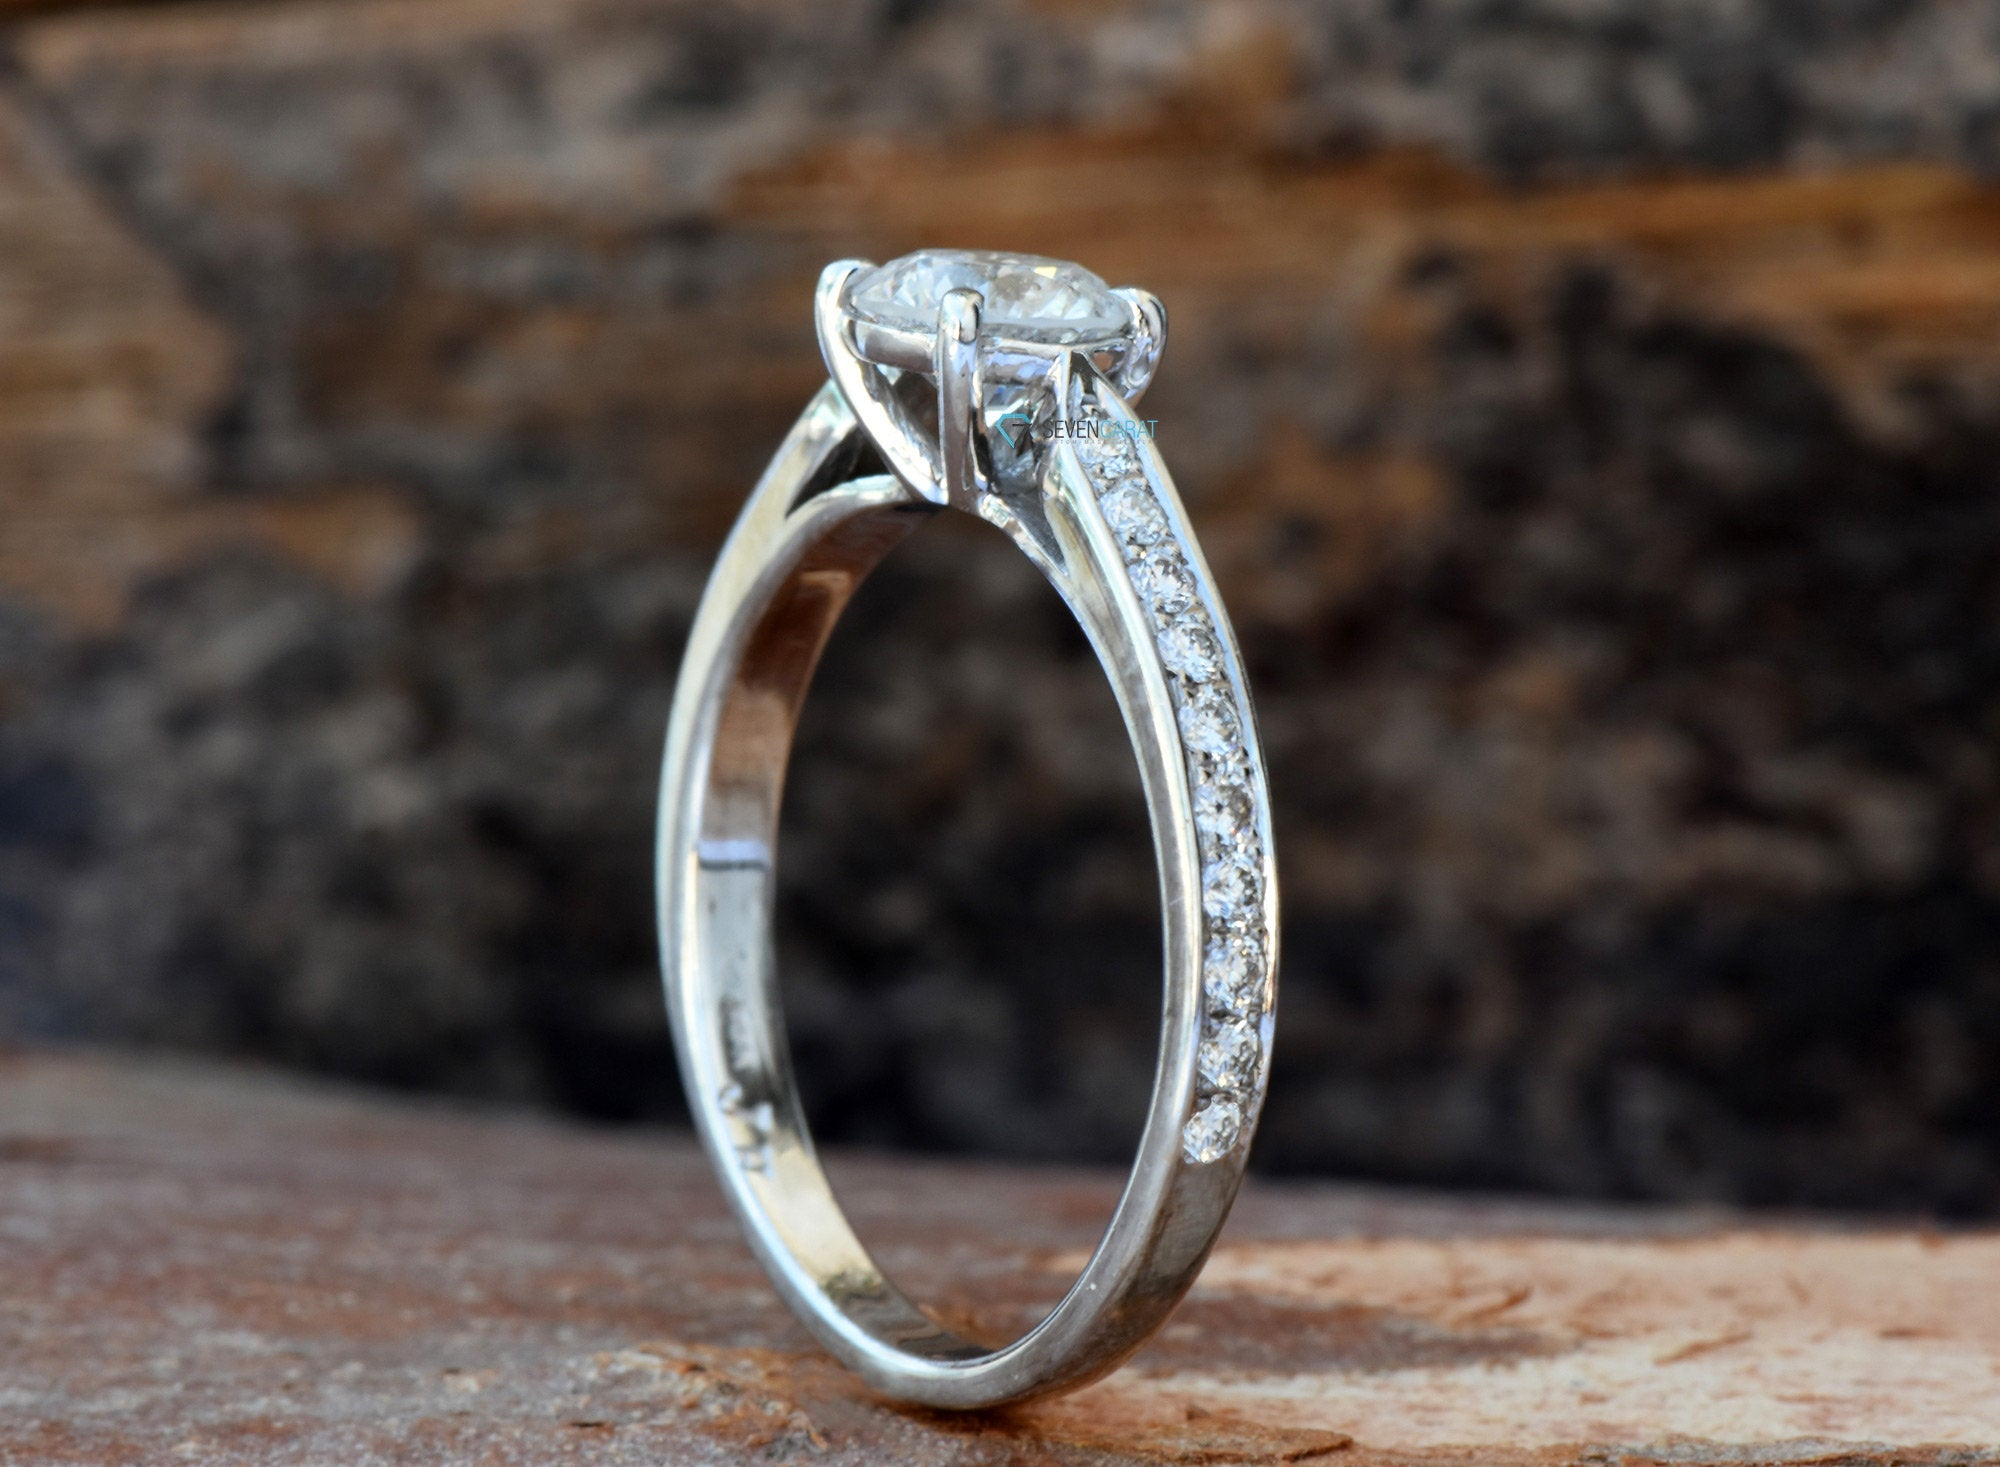 ON SALE 1 carat diamond ring !!!White Gold Engagement Ring -Diamond Engagement Ring -White Gold Ring-Art deco engagement ring - SevenCarat